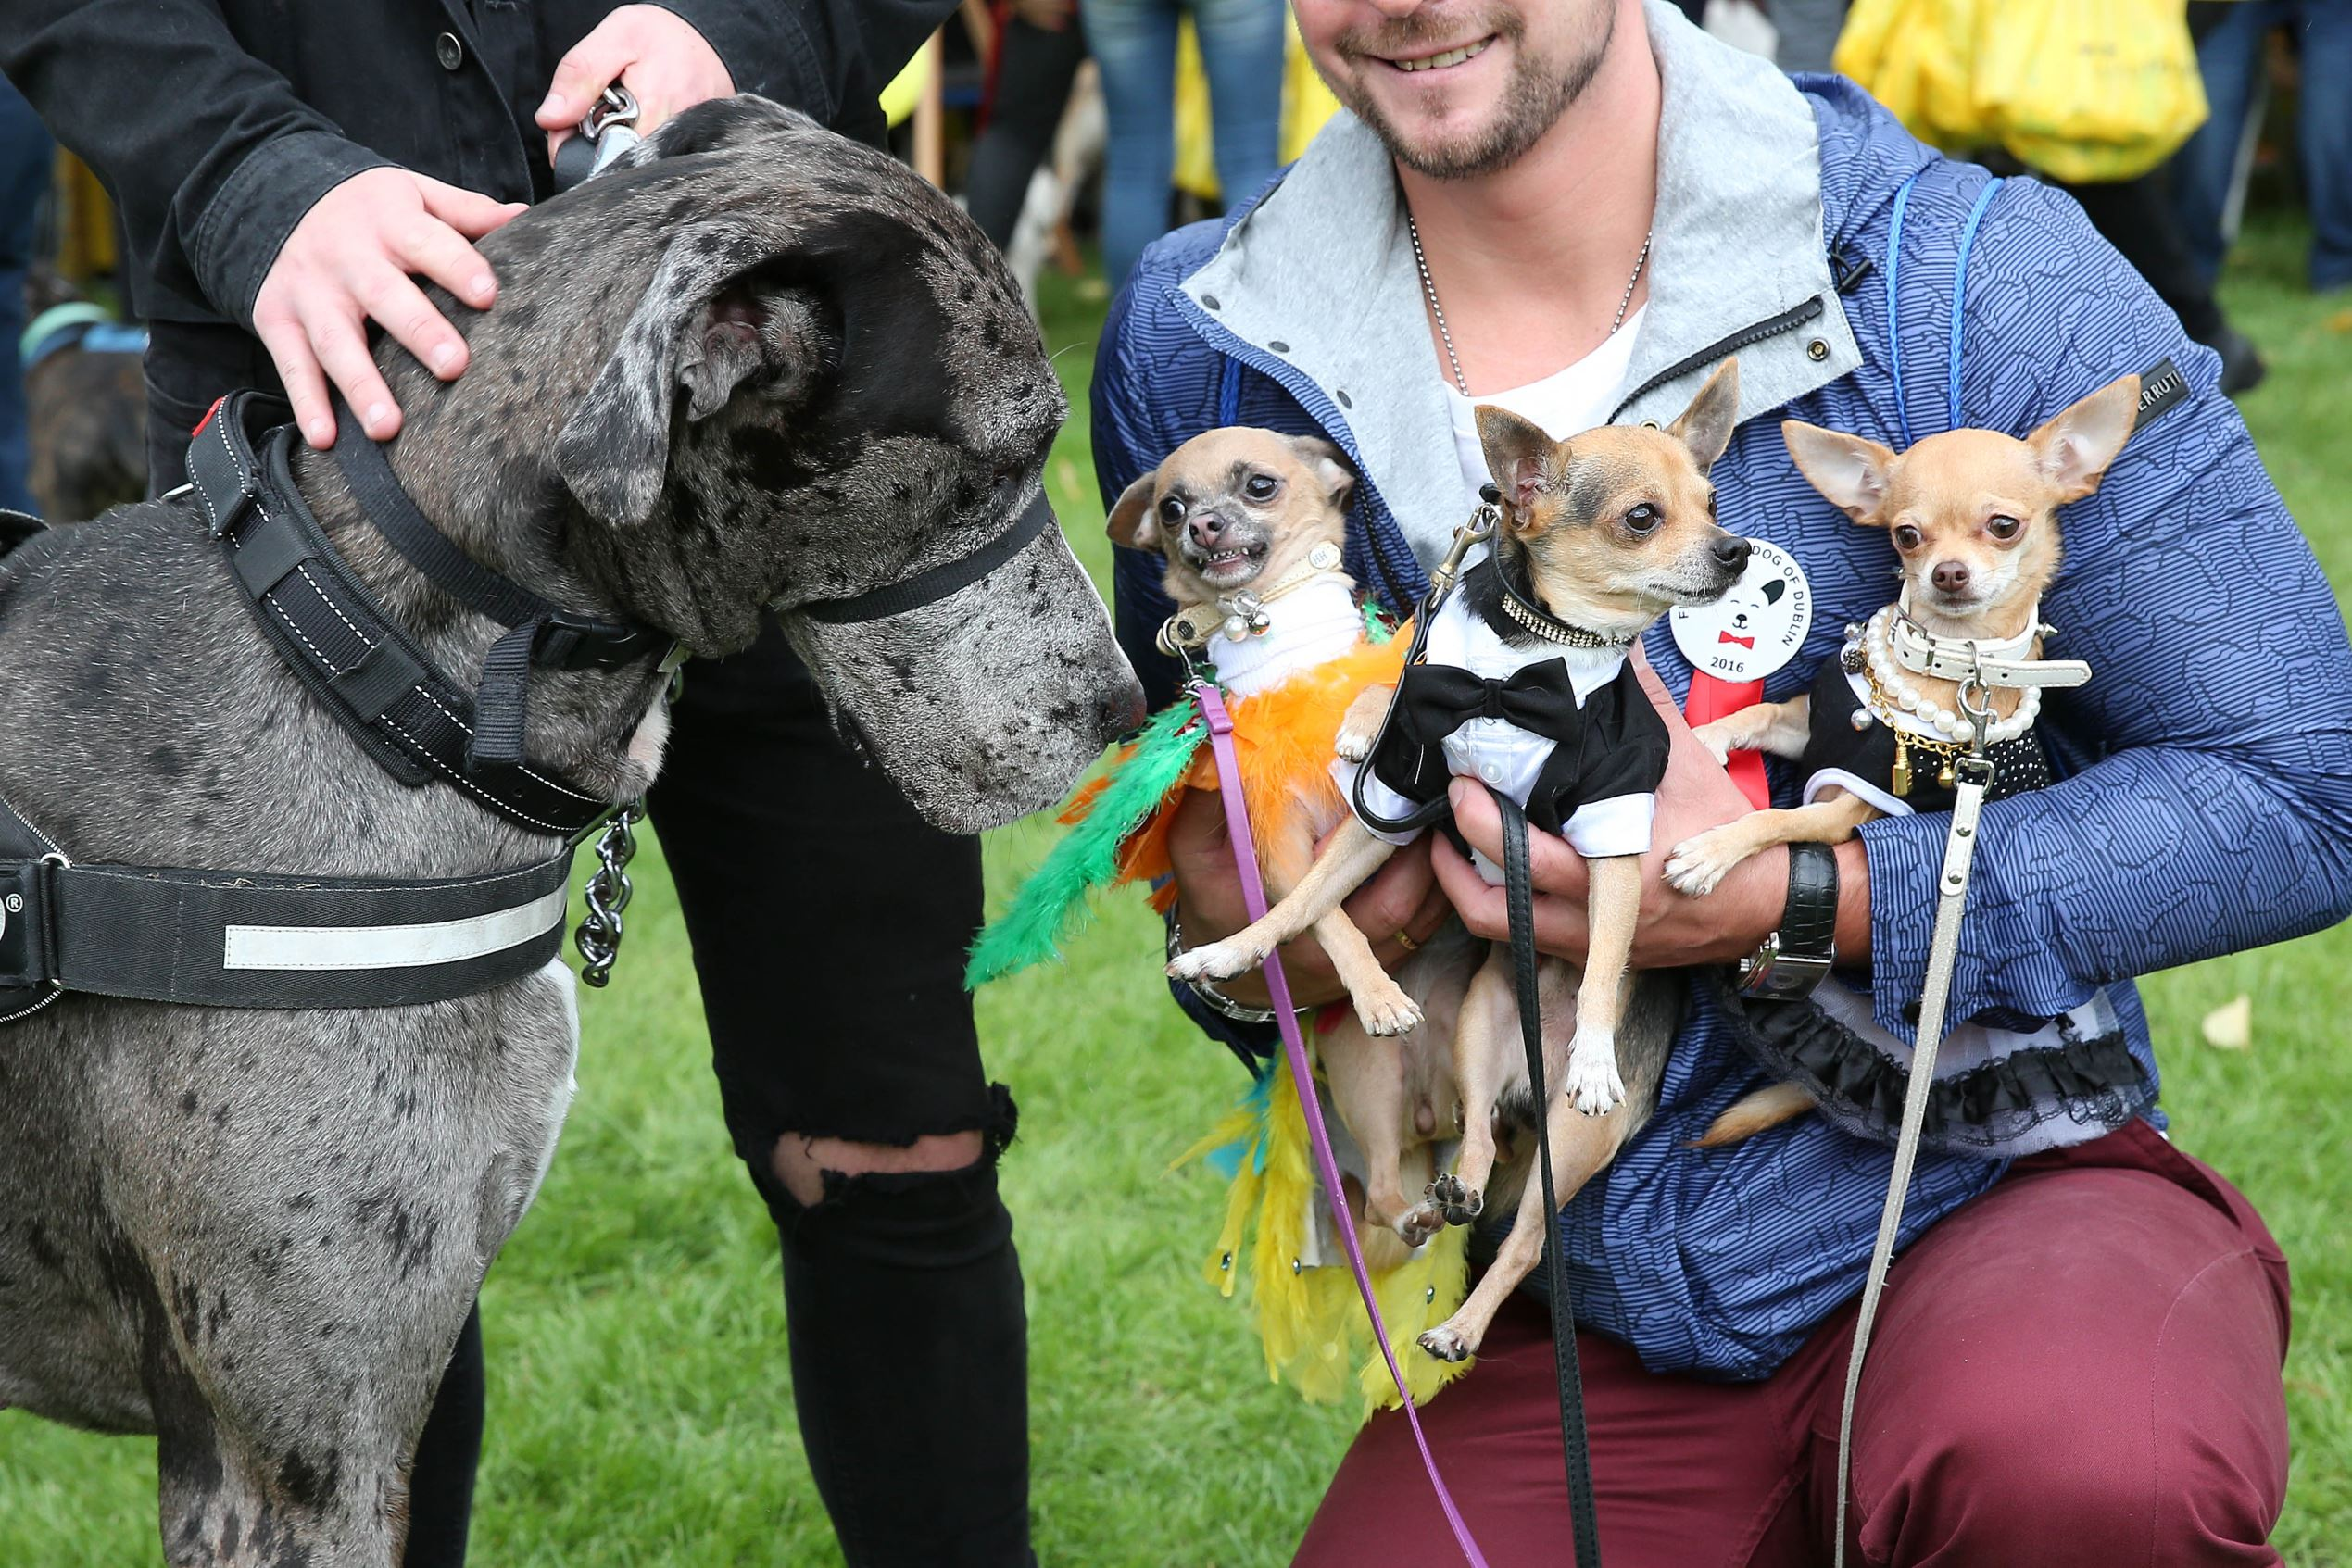 Слайд 9 из 67: The Doggie Do canine festival, Dublin, Eire - 11 Sep 2016 Tomas Liudvinavicius' Chihuahuas Rambo, Daisy and Chloe meet Theo Foley's dog Django